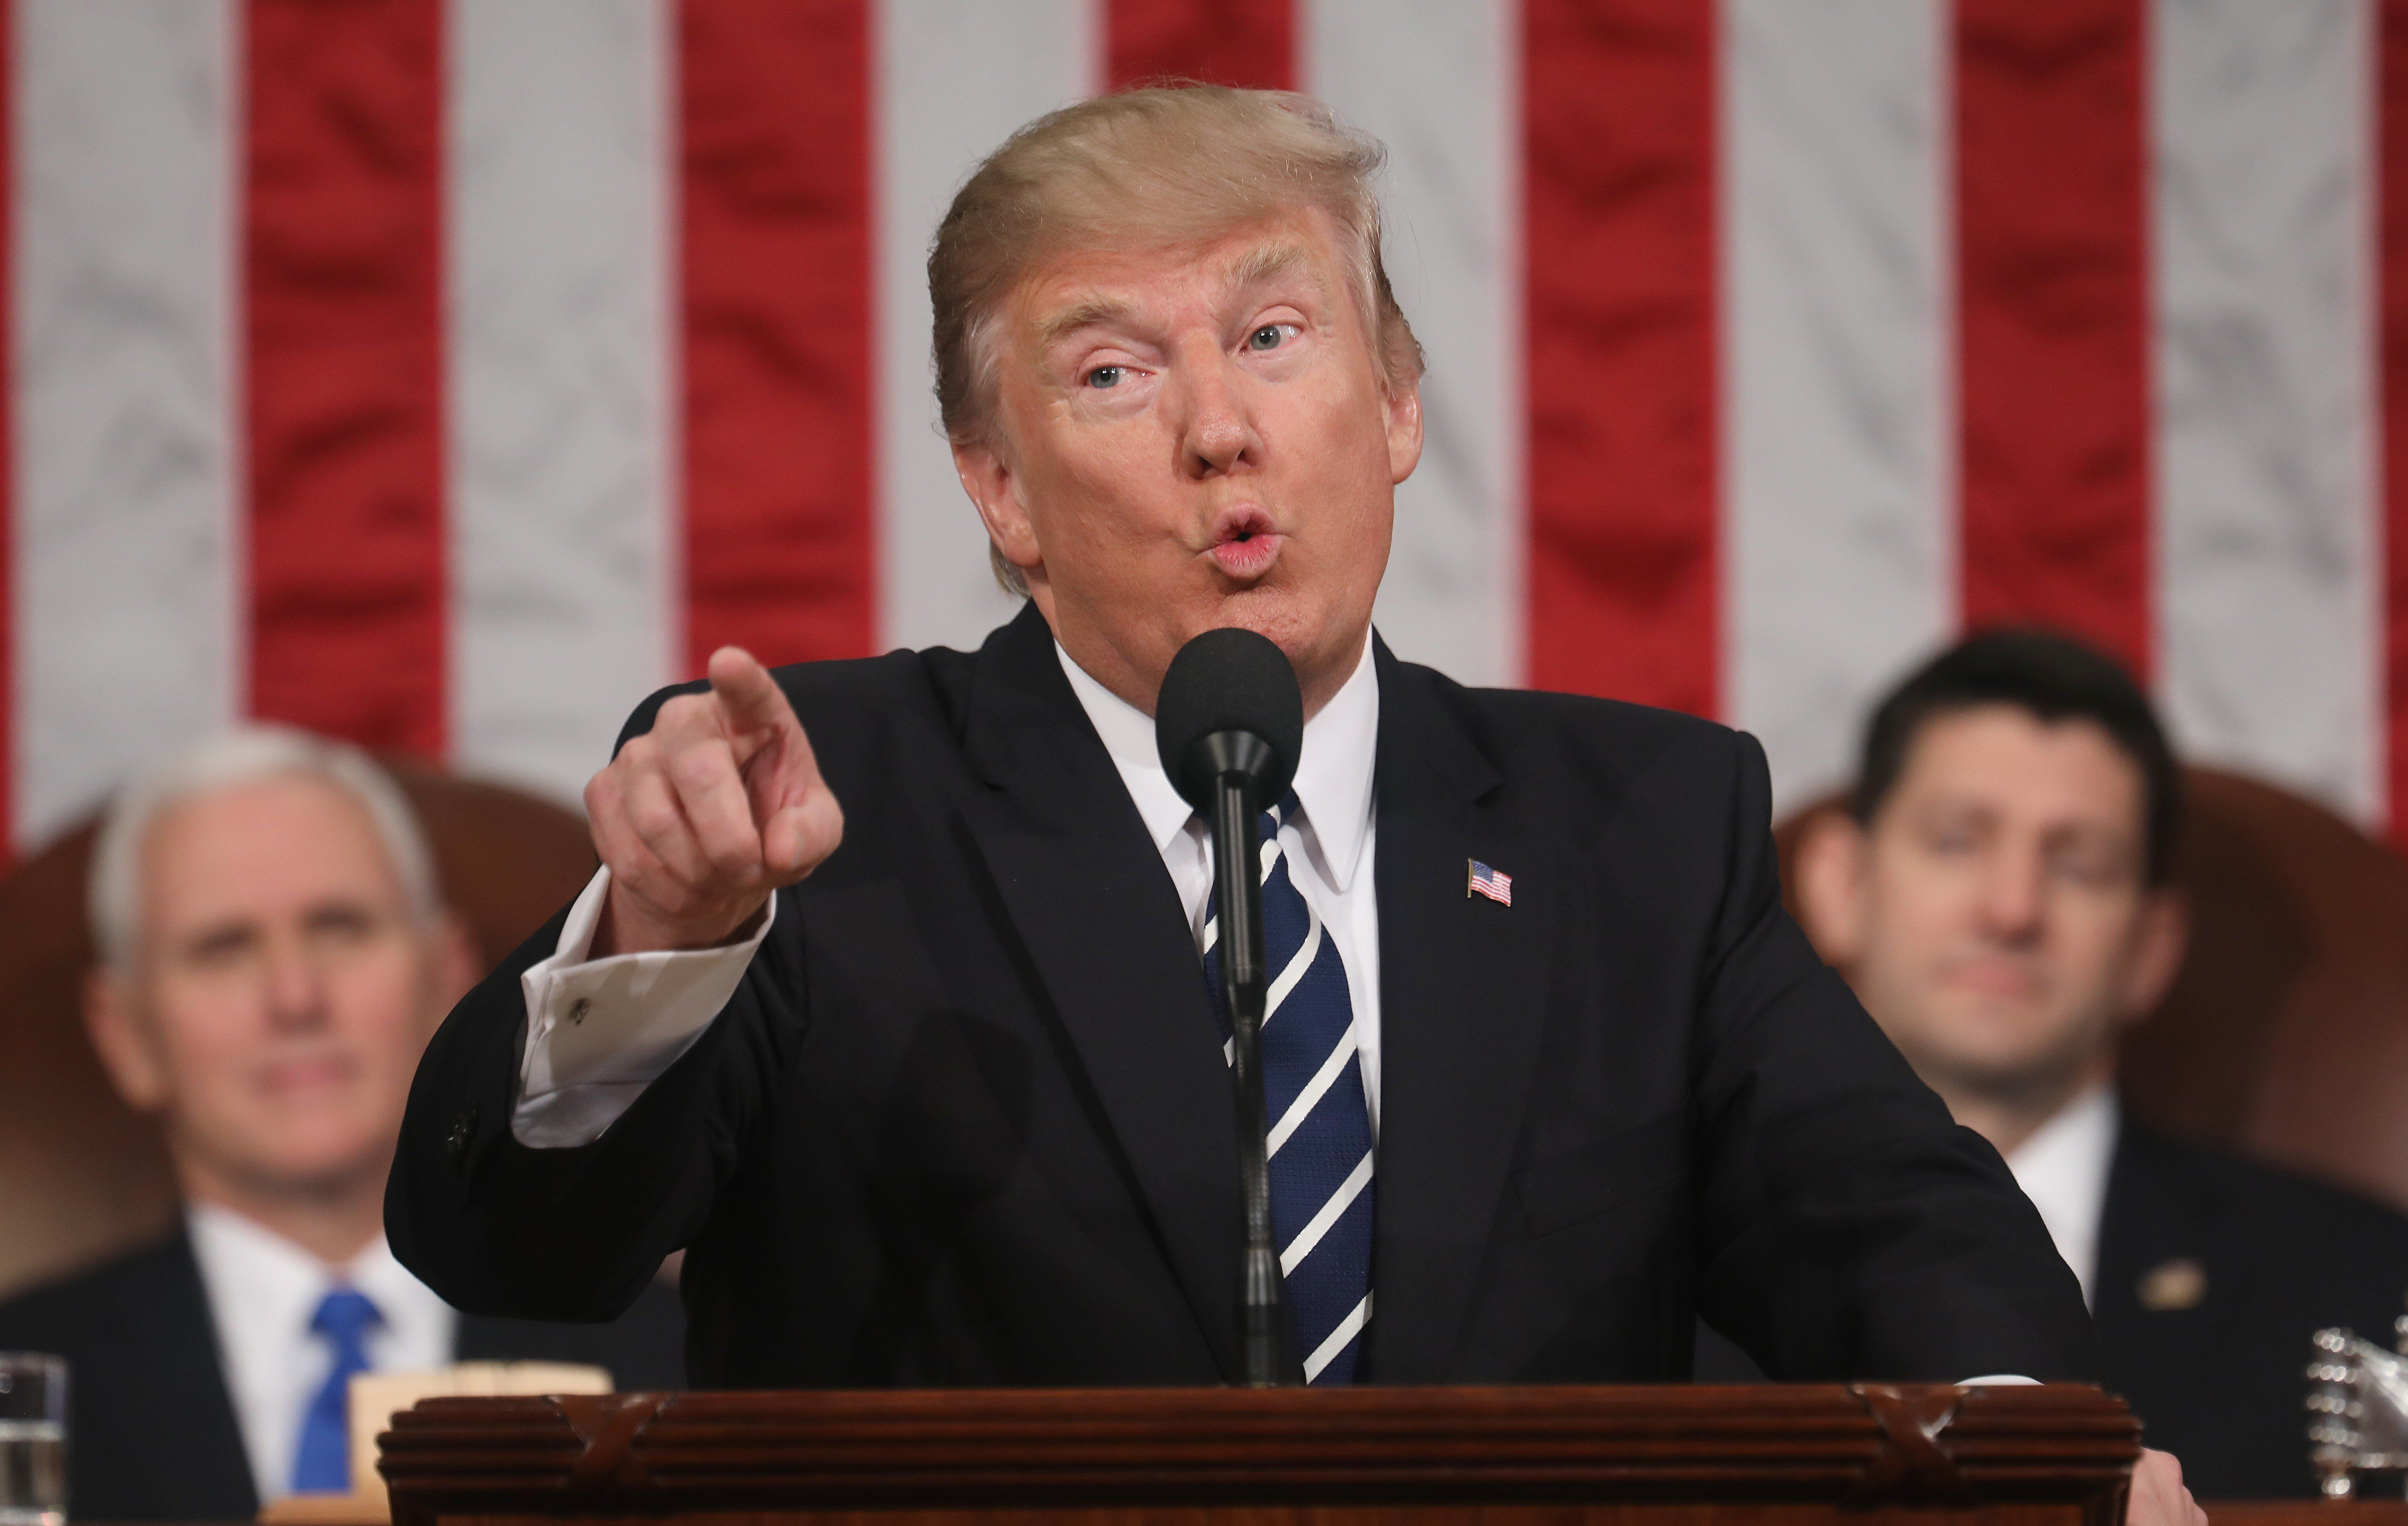 WASHINGTON, USA - FEBRUARY 28: (----EDITORIAL USE ONLY  MANDATORY CREDIT - 'JIM LO SCALZO / EPA / POOL' - NO MARKETING NO ADVERTISING CAMPAIGNS - DISTRIBUTED AS A SERVICE TO CLIENTS----) US President Donald J. Trump delivers his first address to a joint session of Congress from the floor of the House of Representatives in Washington, United States on February 28, 2017. Traditionally the first address to a joint session of Congress by a newly-elected president is not referred to as a State of the Union.  (Photo by Jim Lo Scalzo/EPA/Pool/Anadolu Agency/Getty Images)